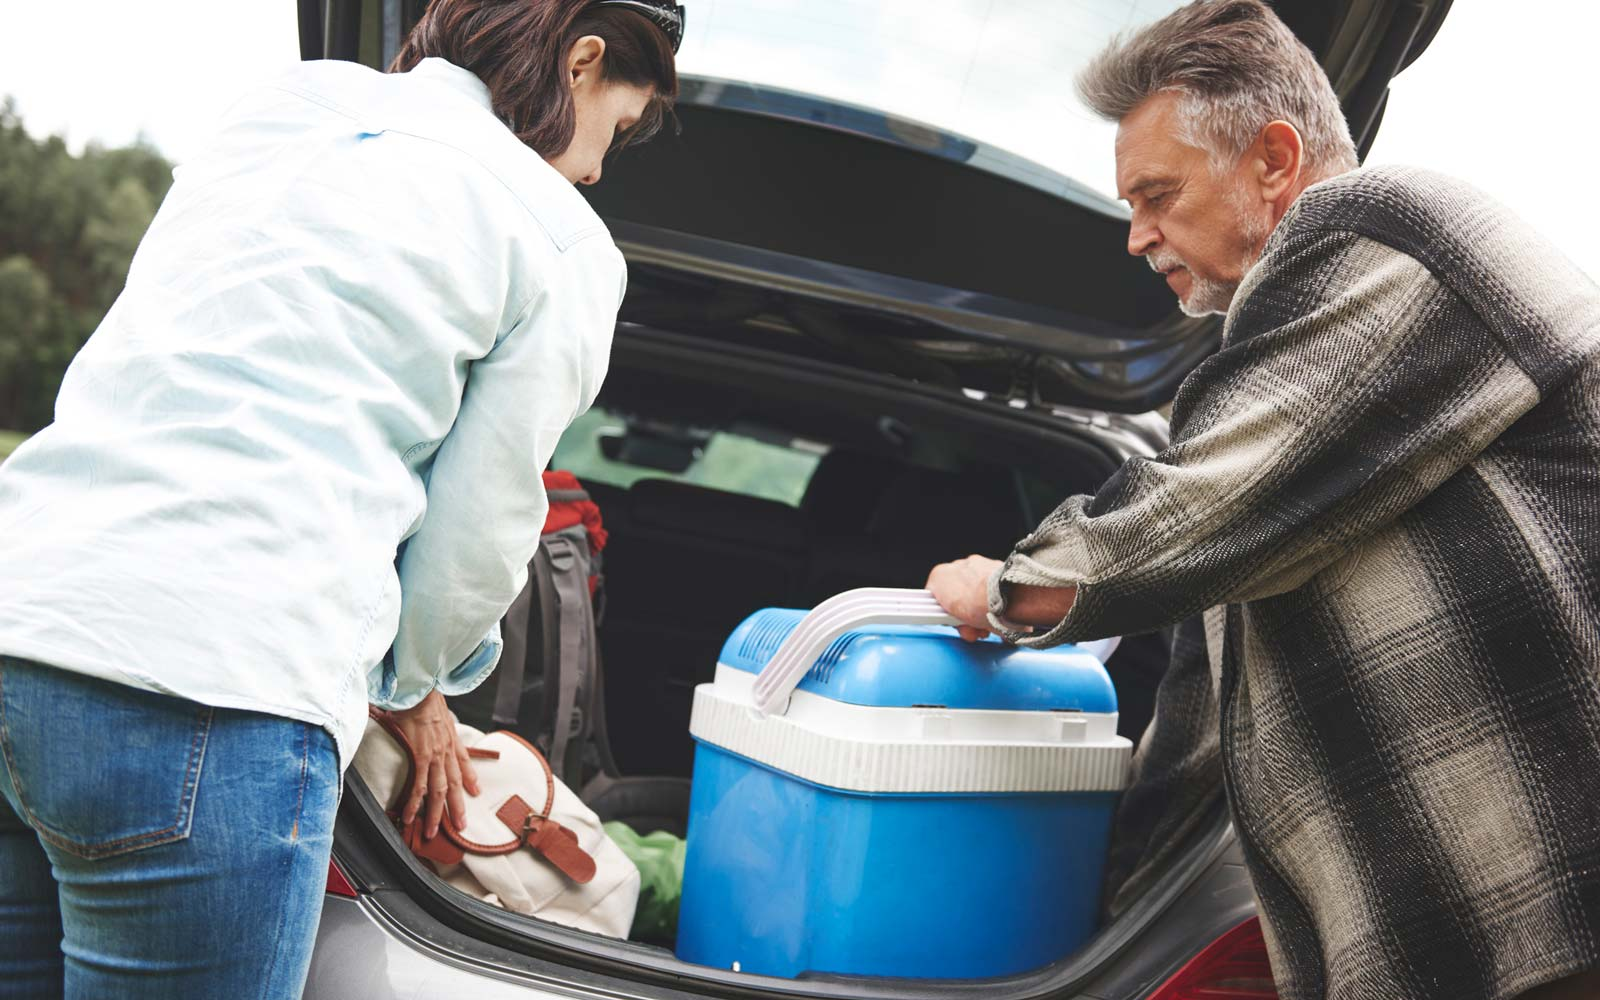 Mature couple removing camping equipment from car boot